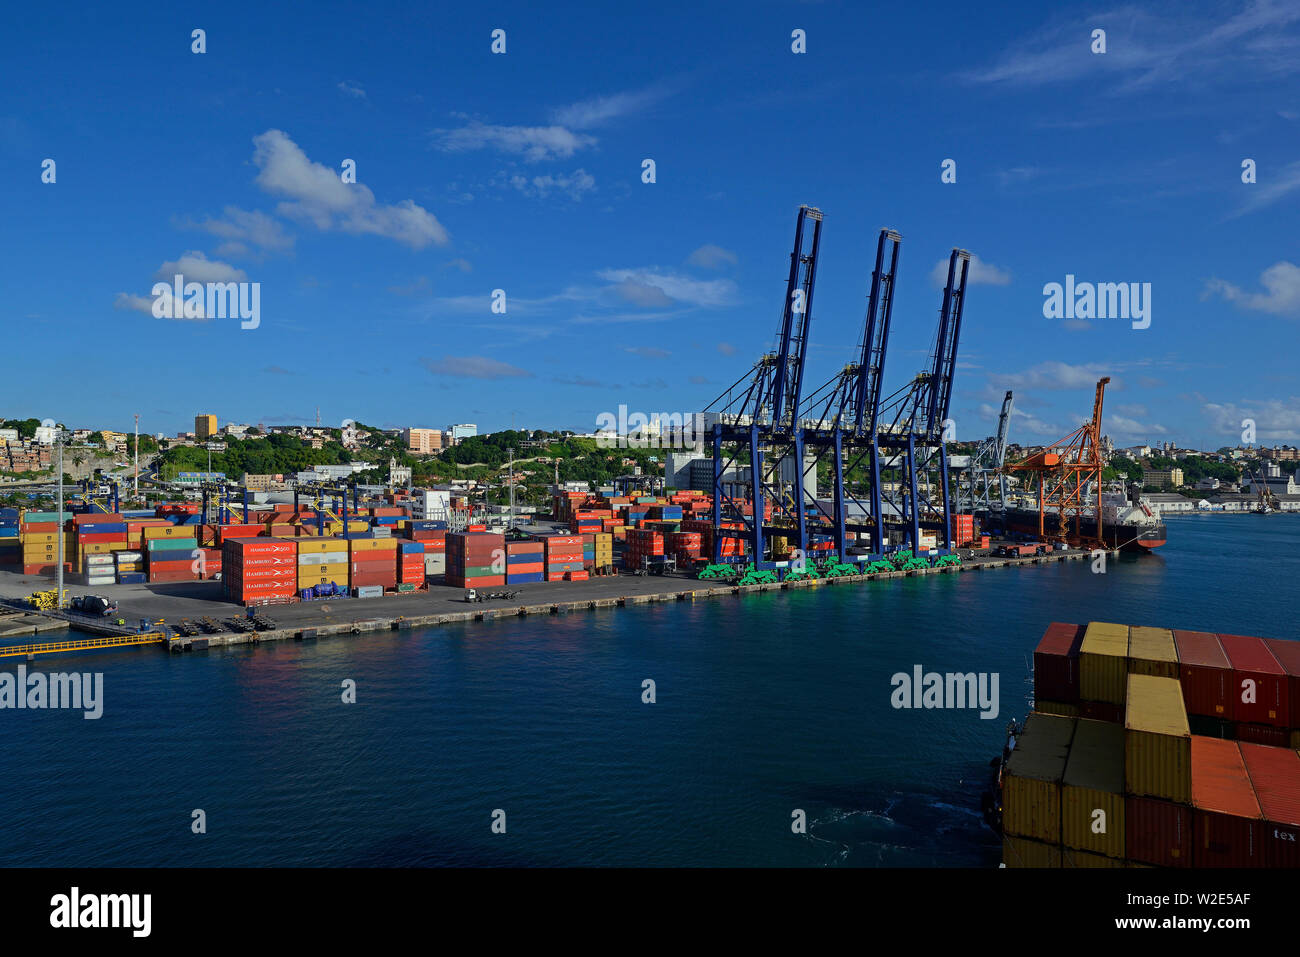 slvador bahia, brazil - february 15, 2014:  panoramic view onto  salvador bahia  tecon wilson sons container terminal from an arriving containership - Stock Image